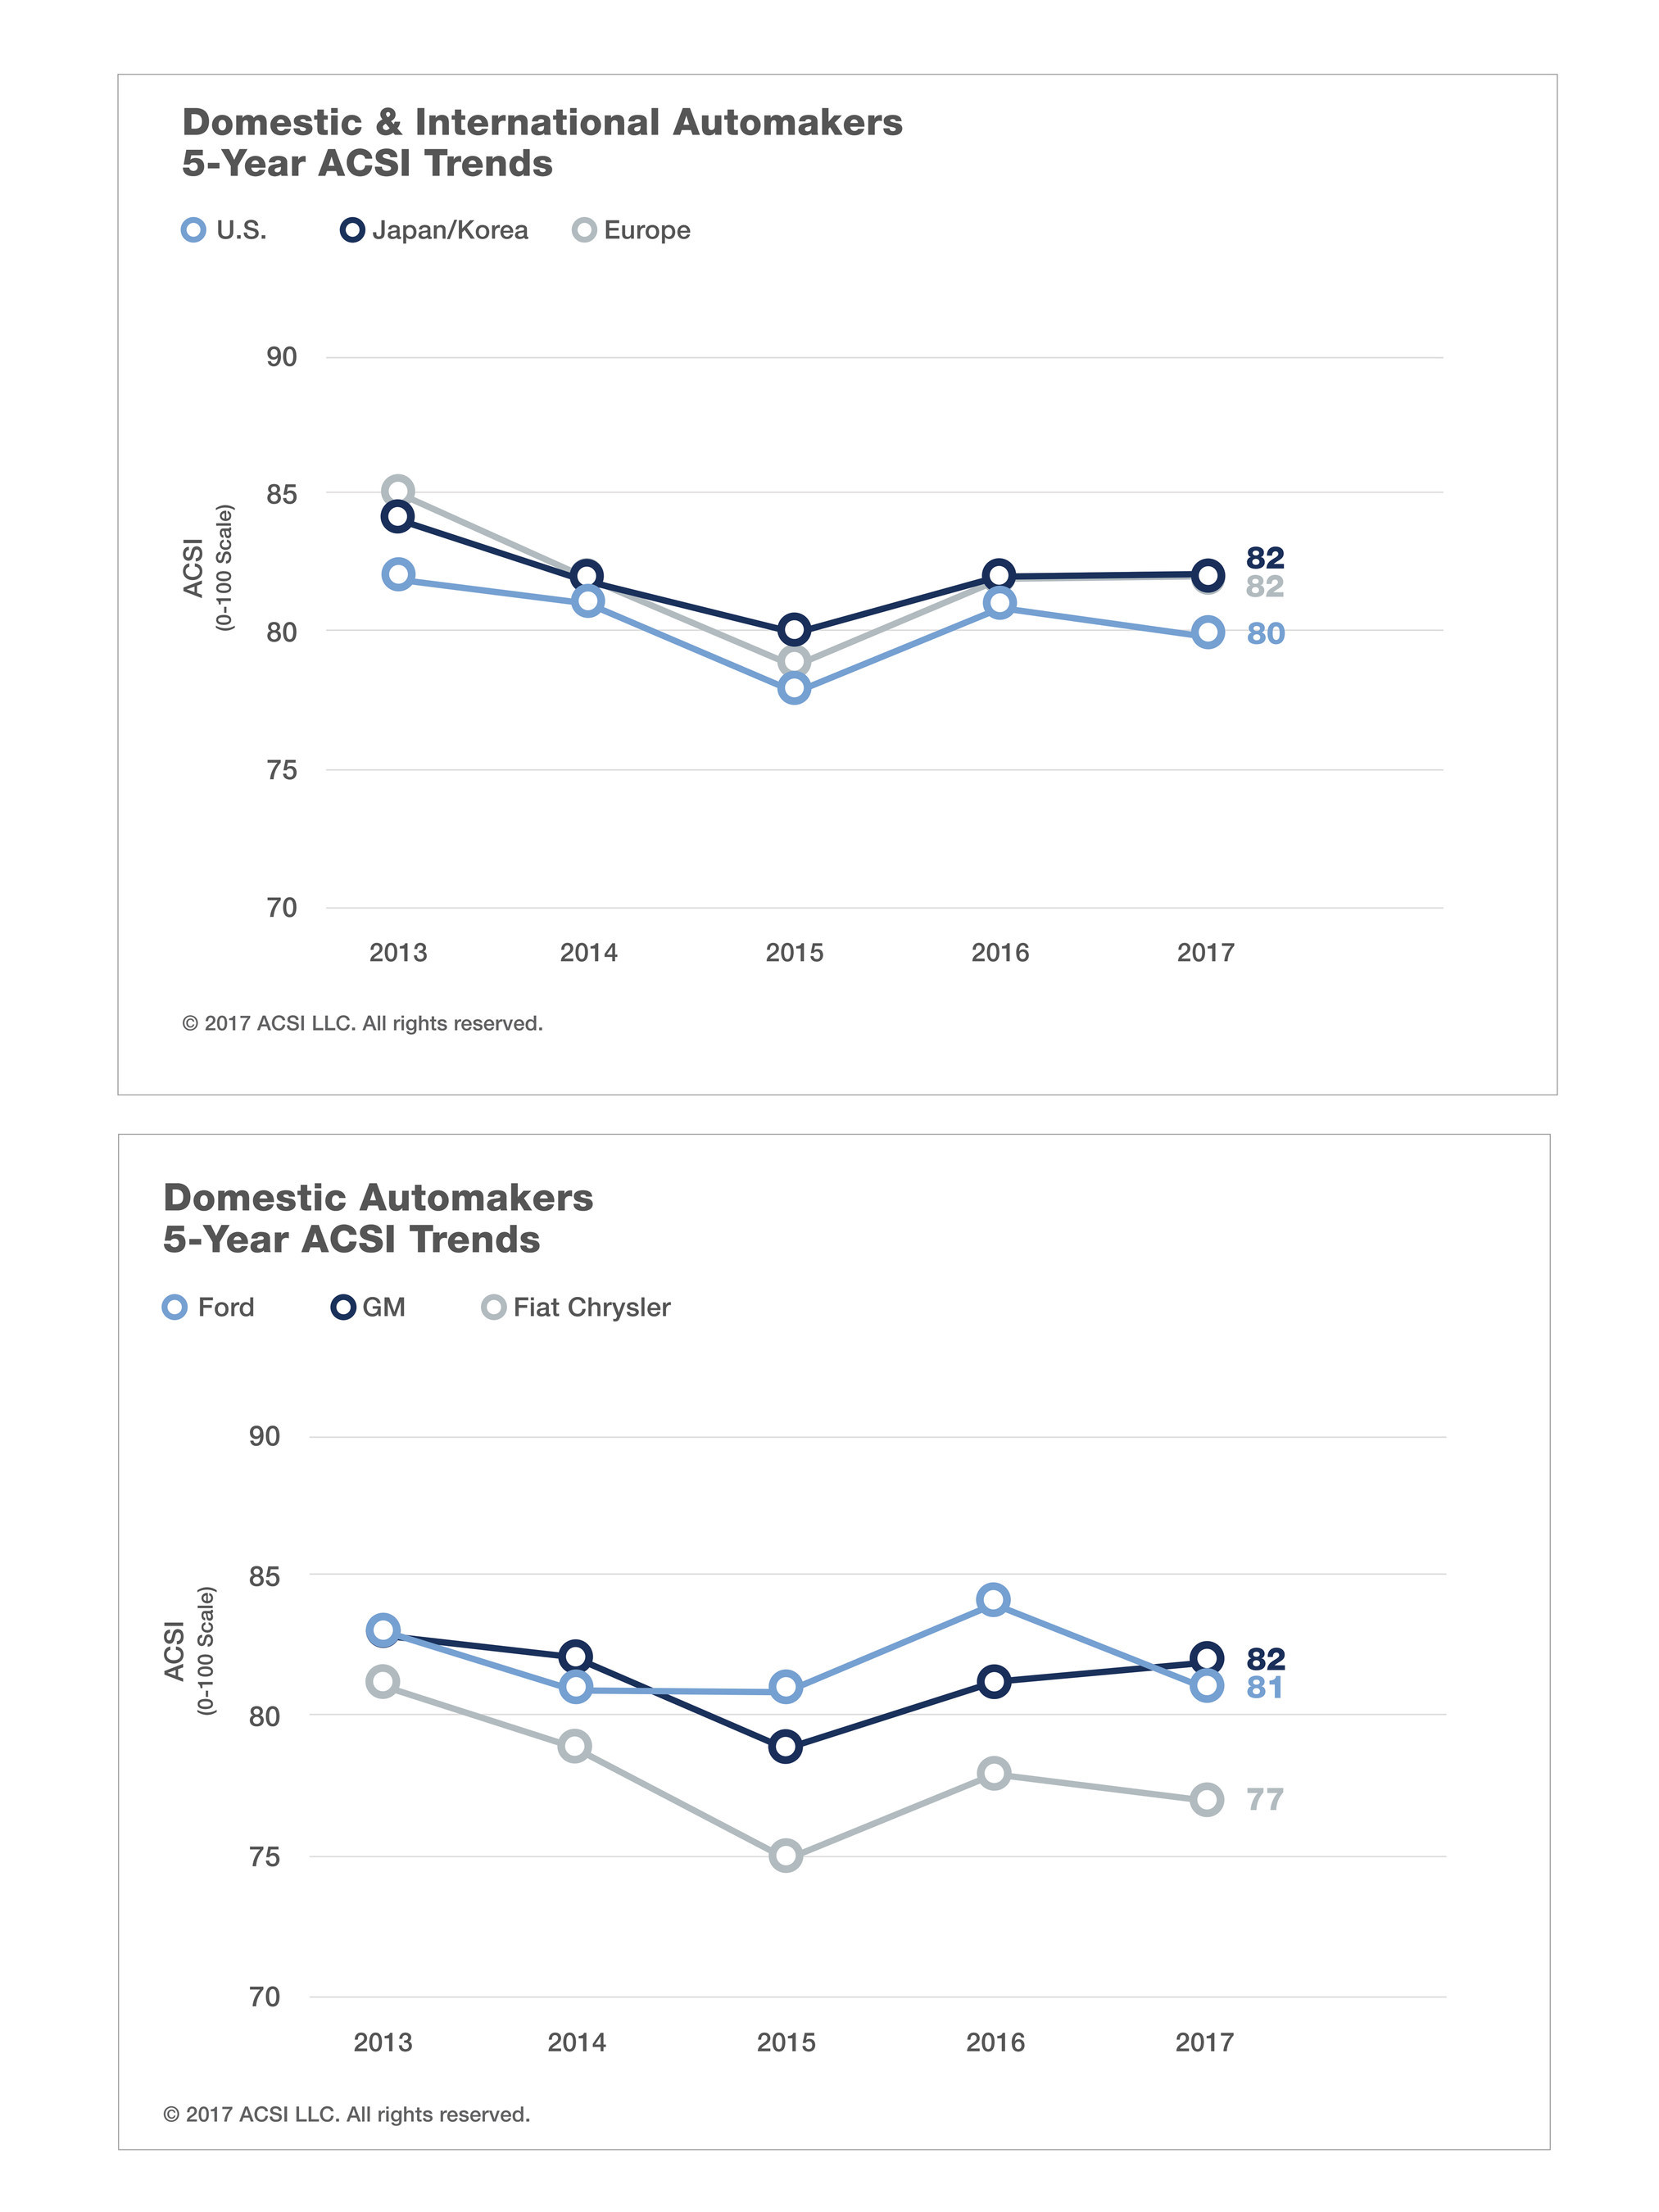 American Customer Satisfaction Index (ACSI) Auto Trends: Domestic vs Foreign Car Customer Satisfaction